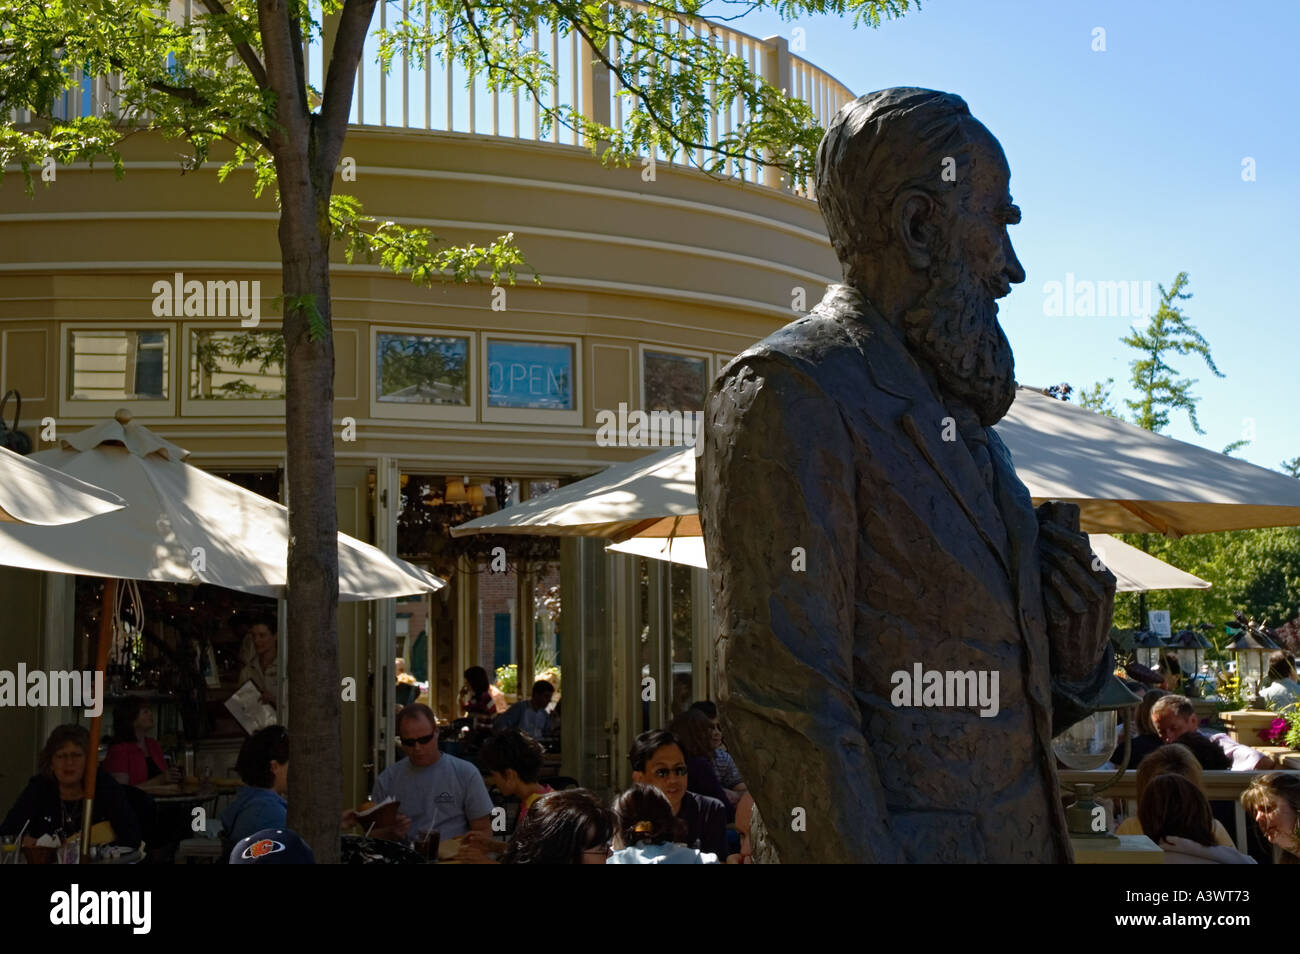 Canada Ontario Niagara on the Lake Shaw Cafe and Wine Bar bronze statue of George Bernard Shaw exterior patio - Stock Image